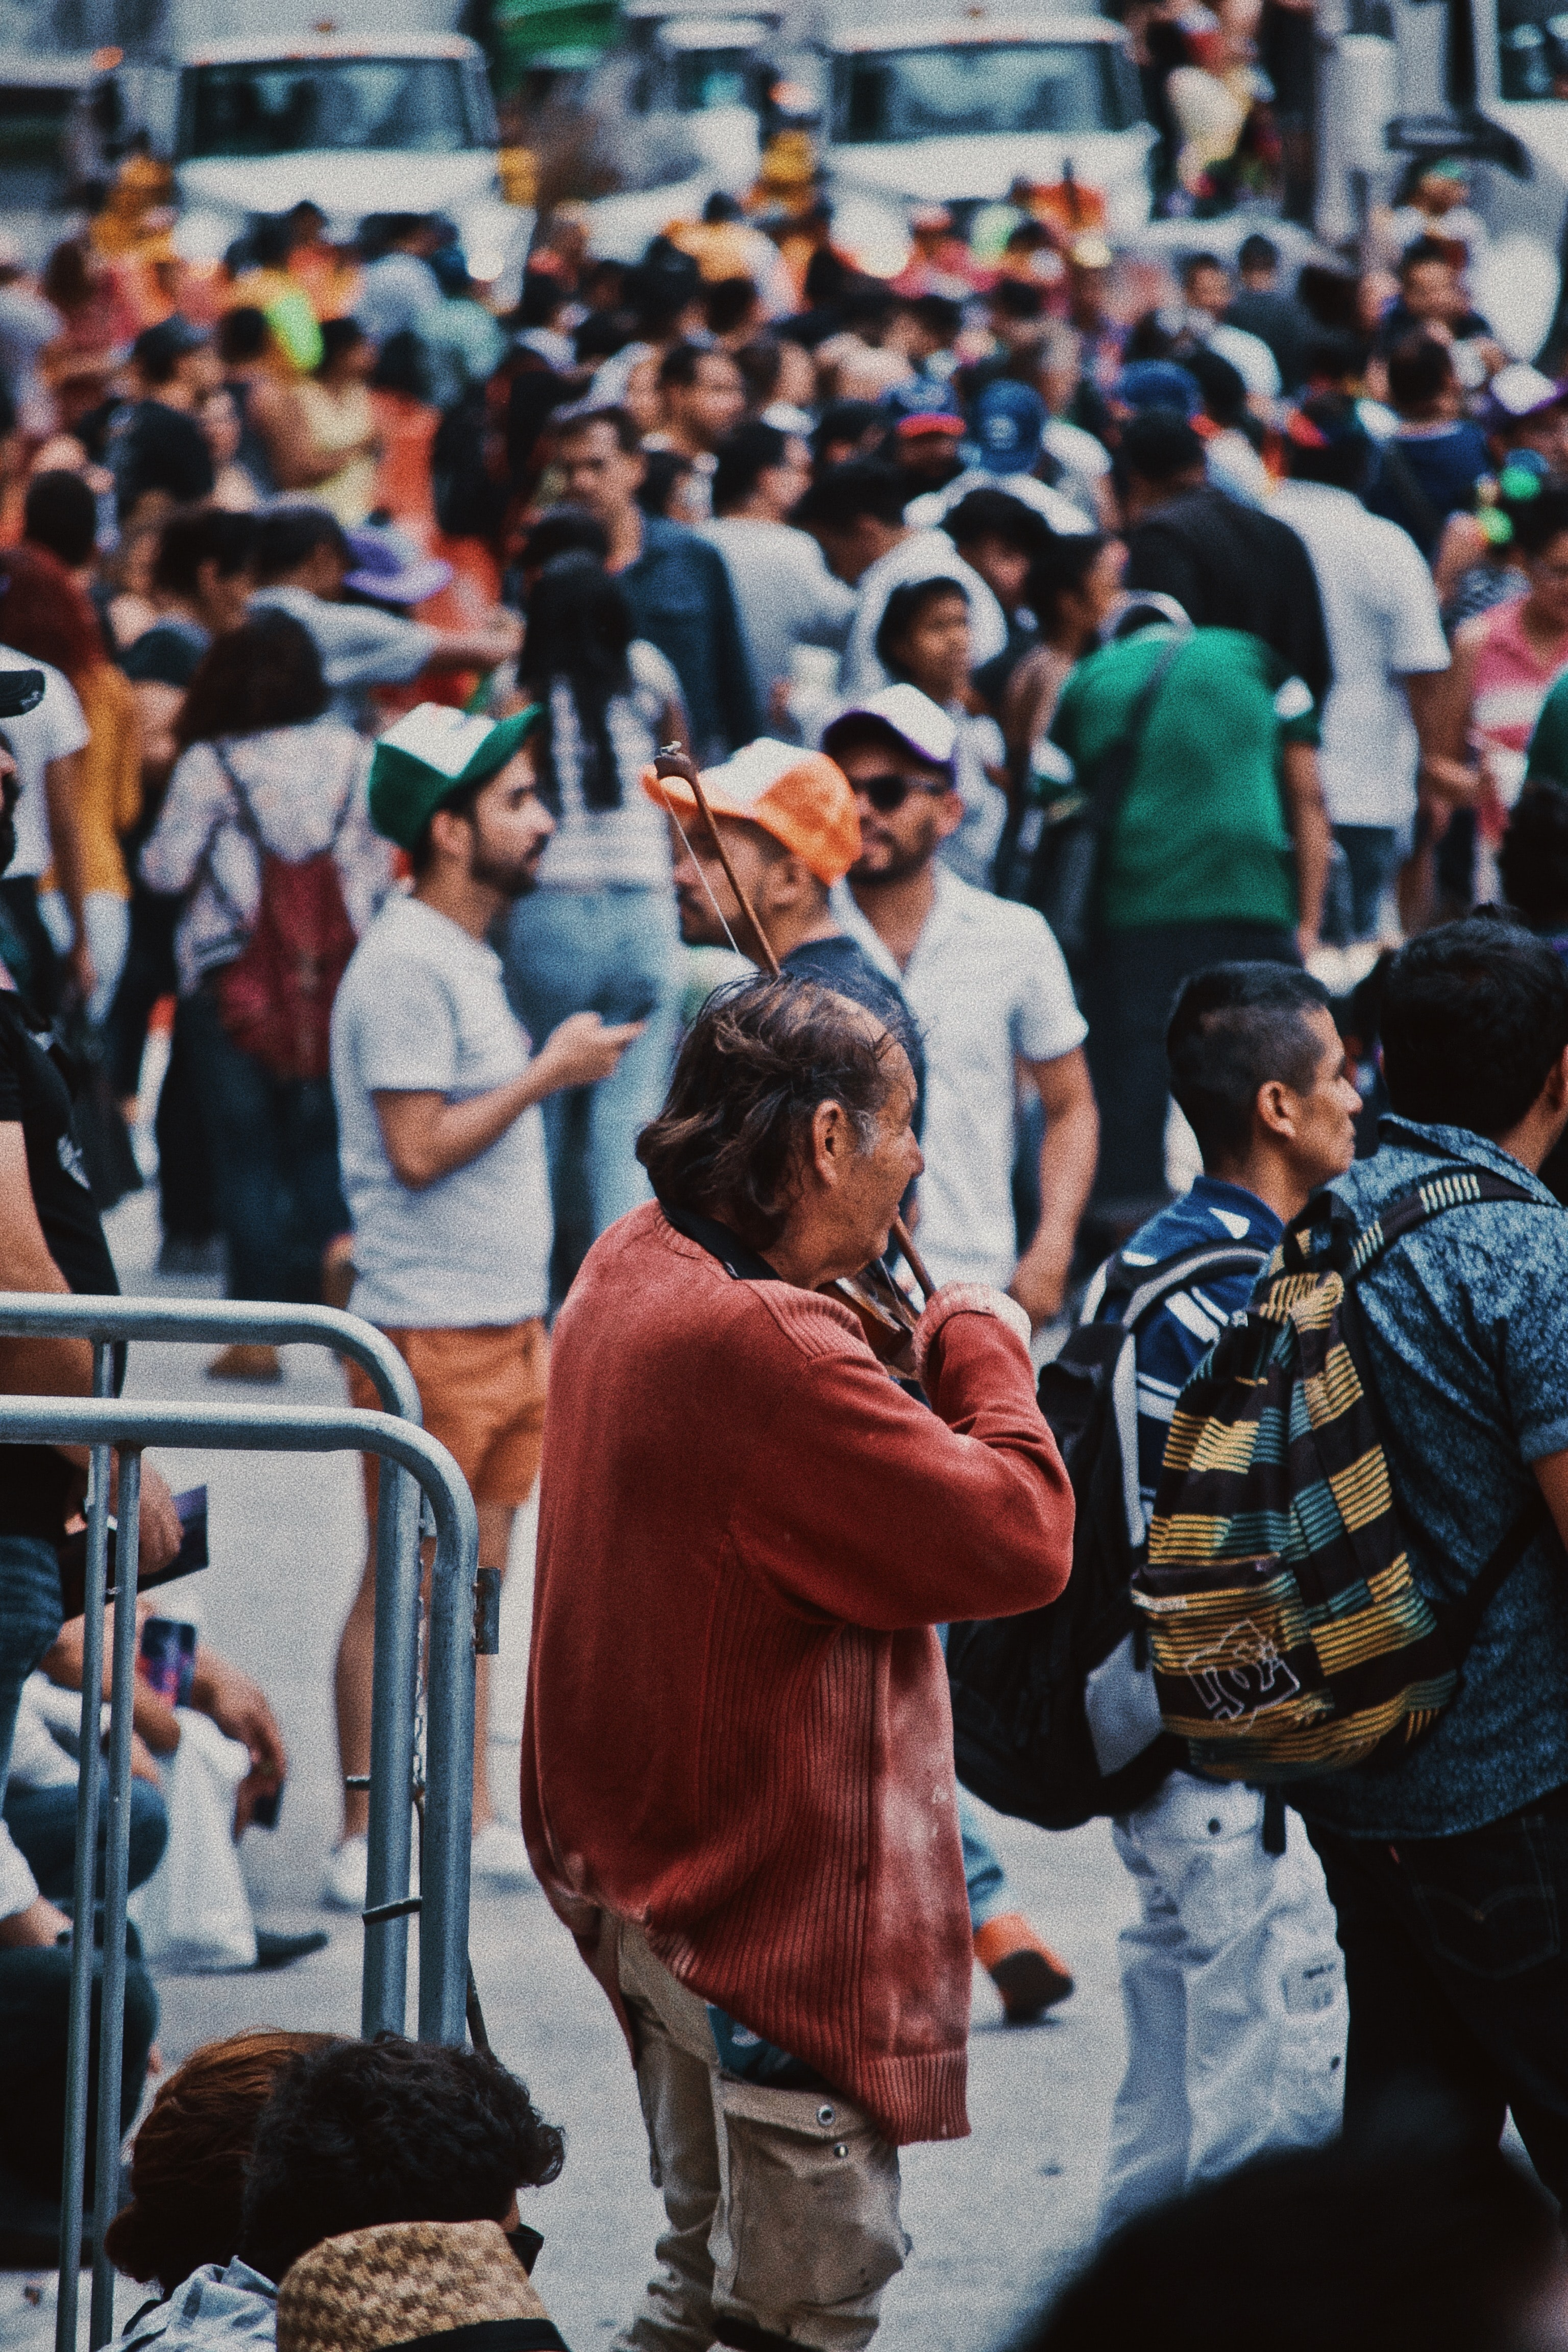 man playing violin in a crowded place